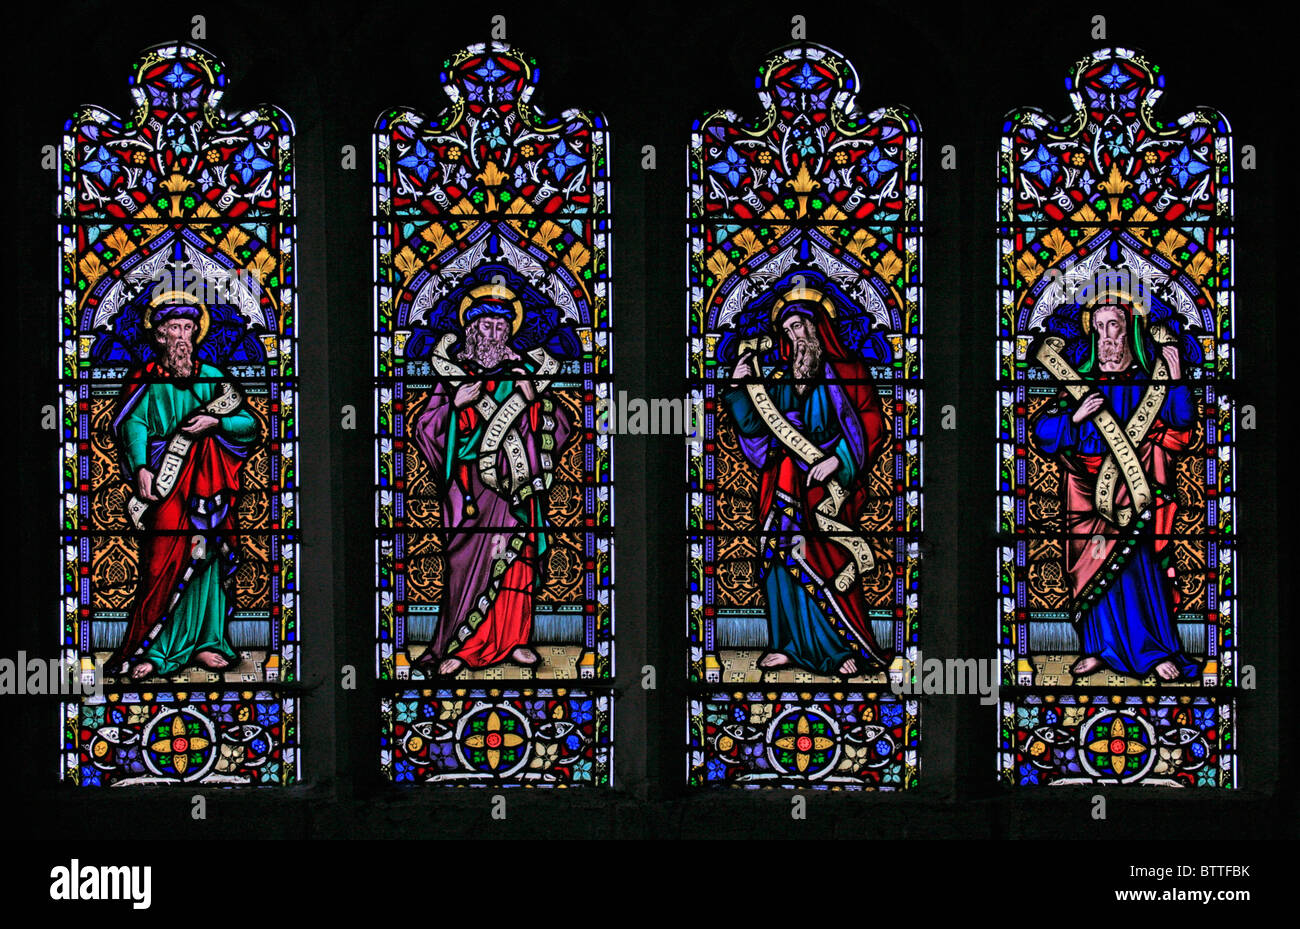 A stained glass window depicting Old Testament Prophets Isaiah, Jeremiah, Ezekiel and Daniel - Stock Image